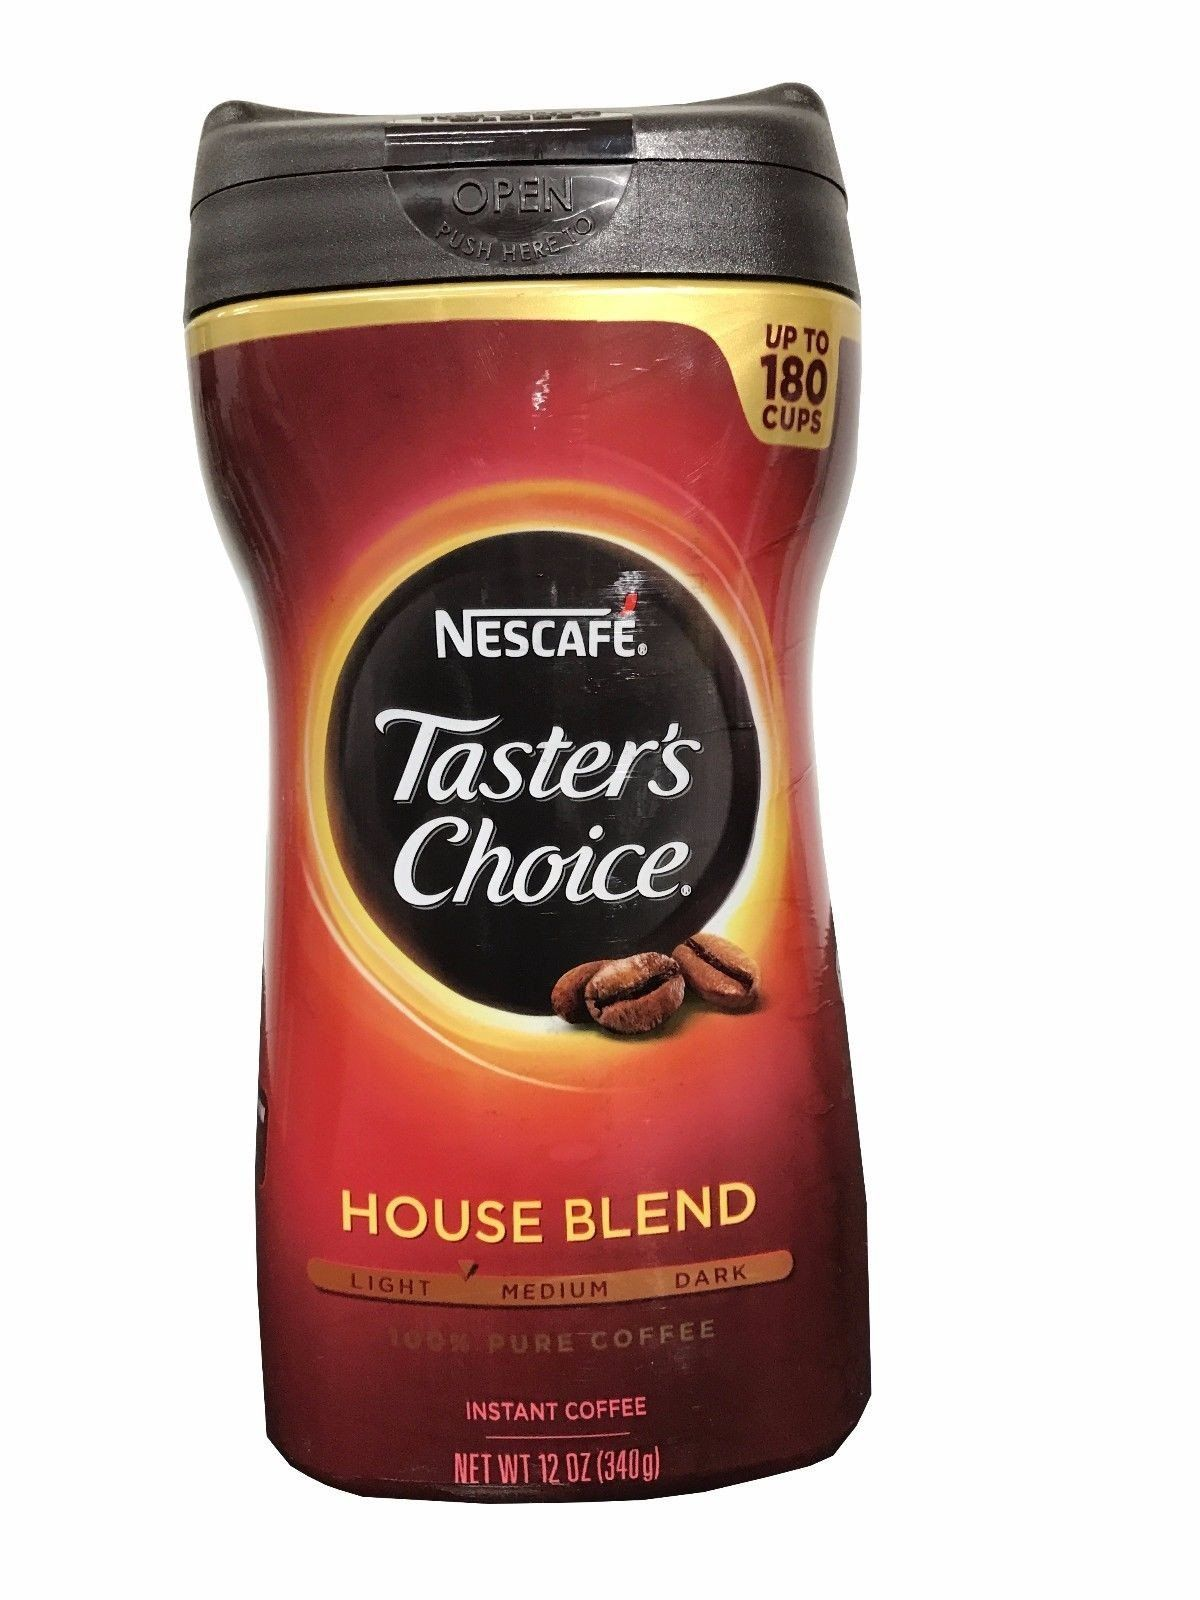 Nescafe Taster's Choice House Blend 100 Pure Instant